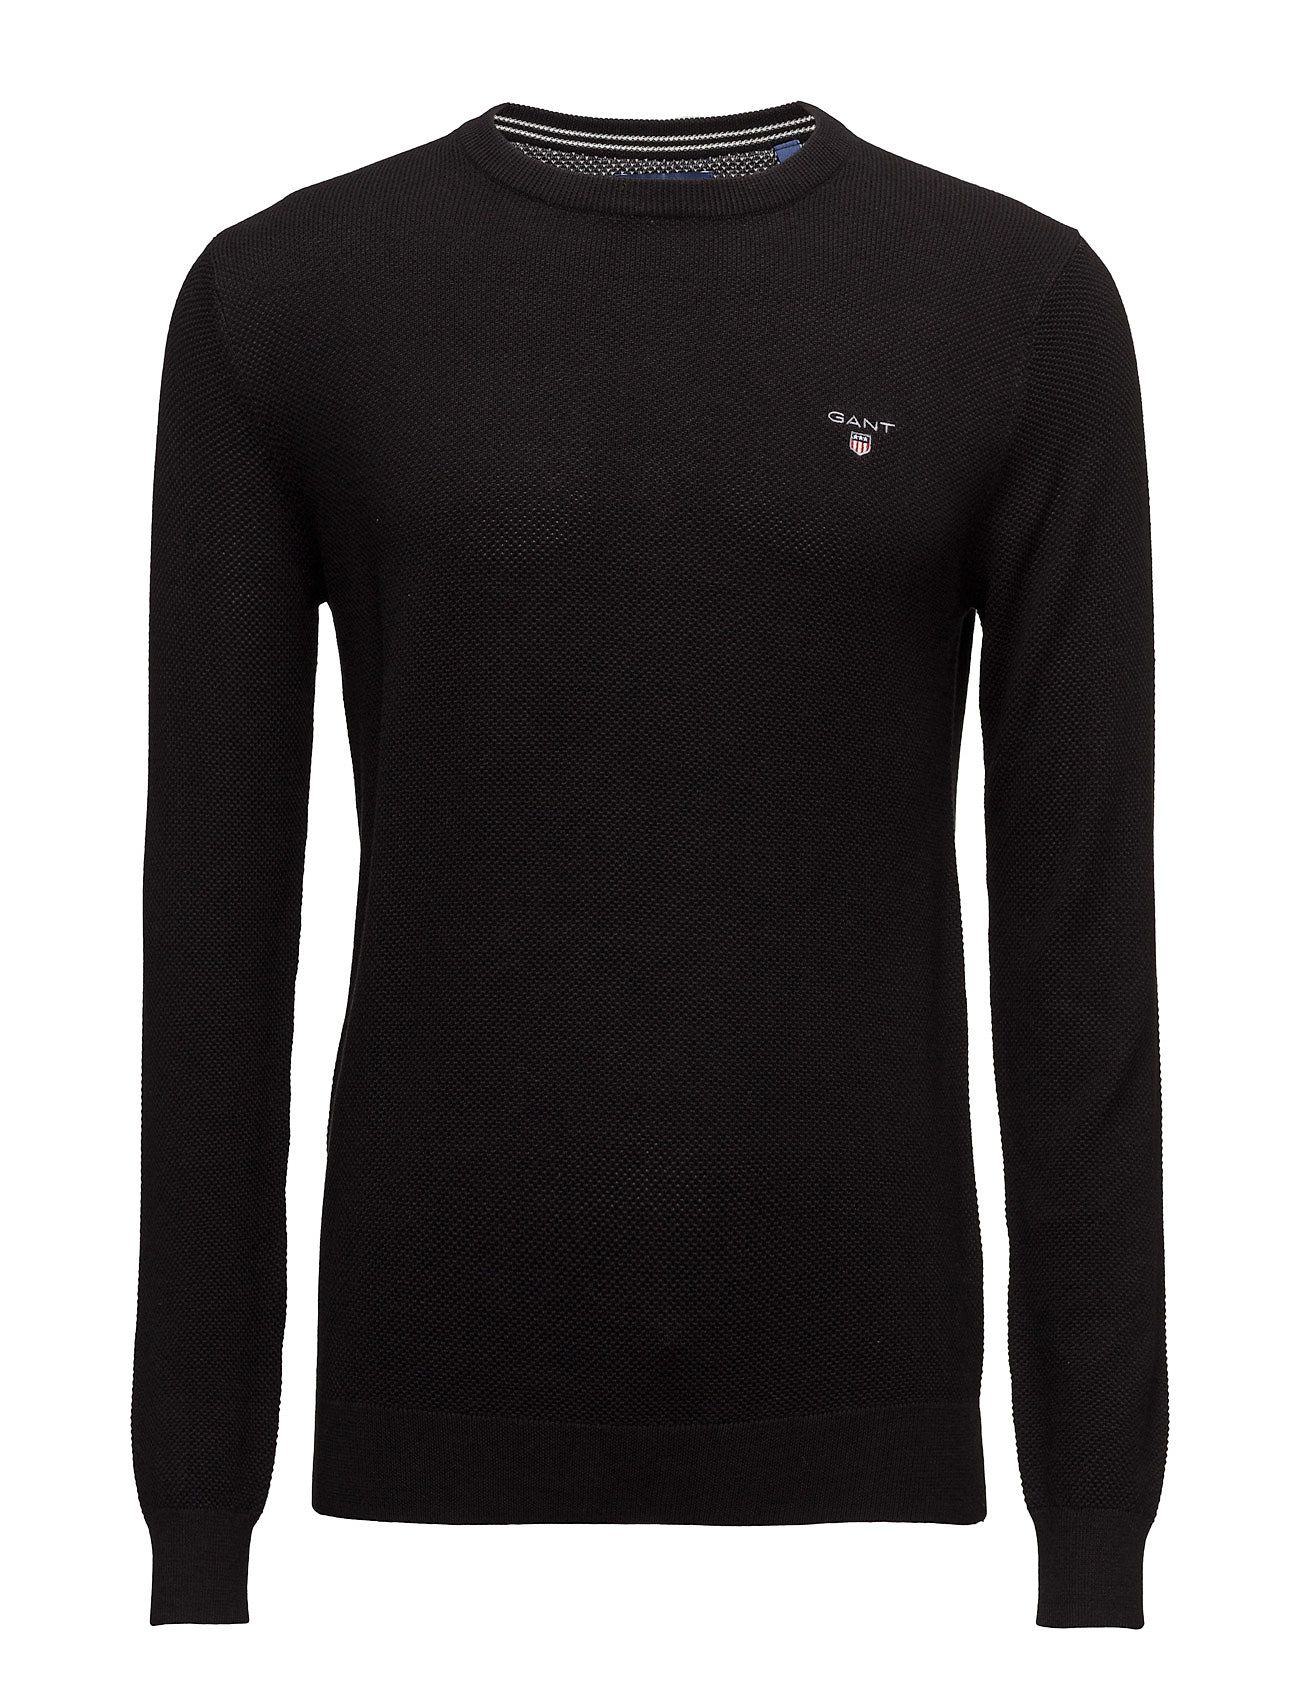 GANT COTTON PIQUE CREW - BLACK